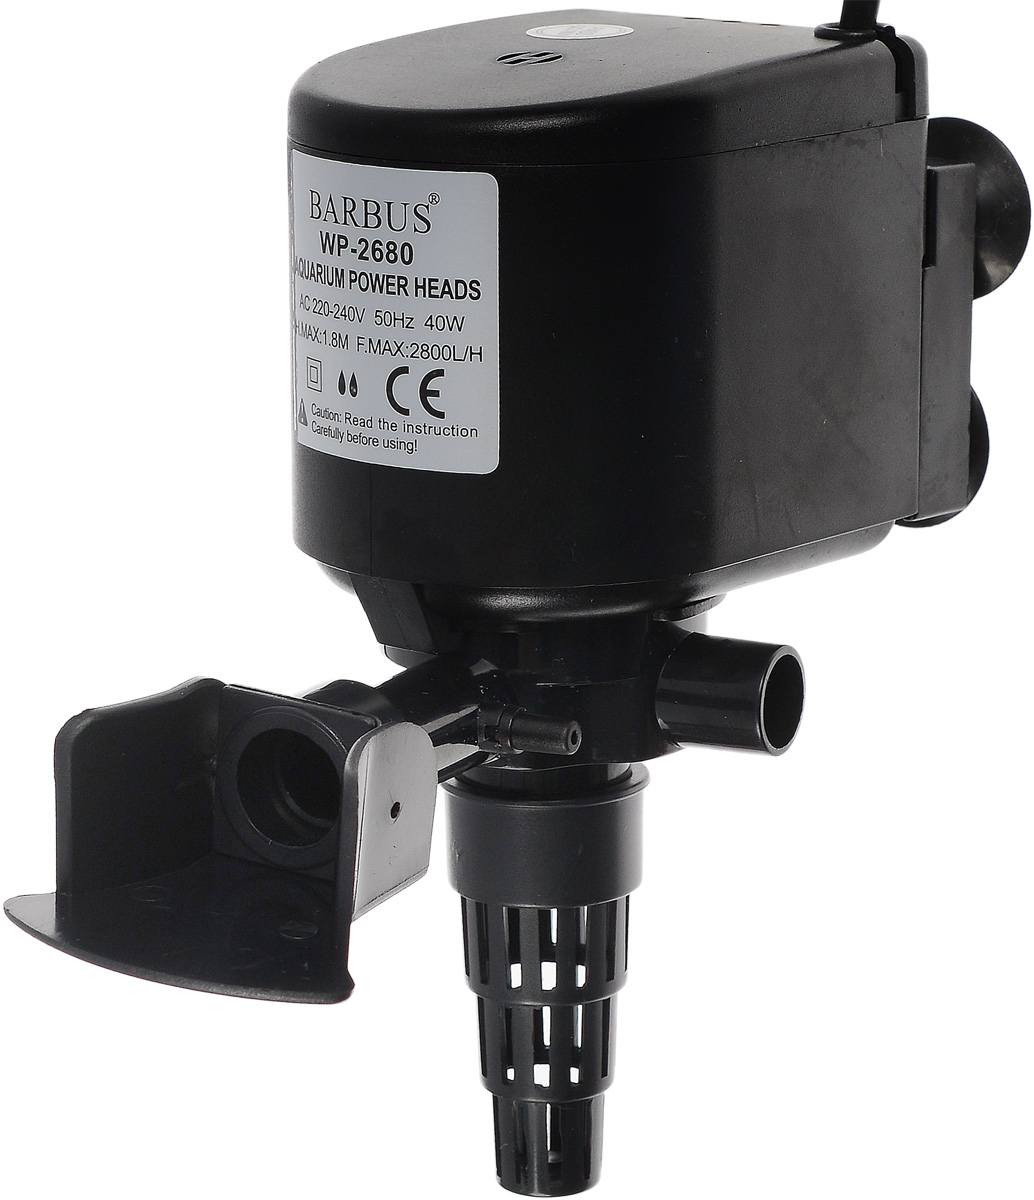 Помпа для аквариума Barbus  PUMP 006 , водяная, 2800 л/ч, 40 Вт